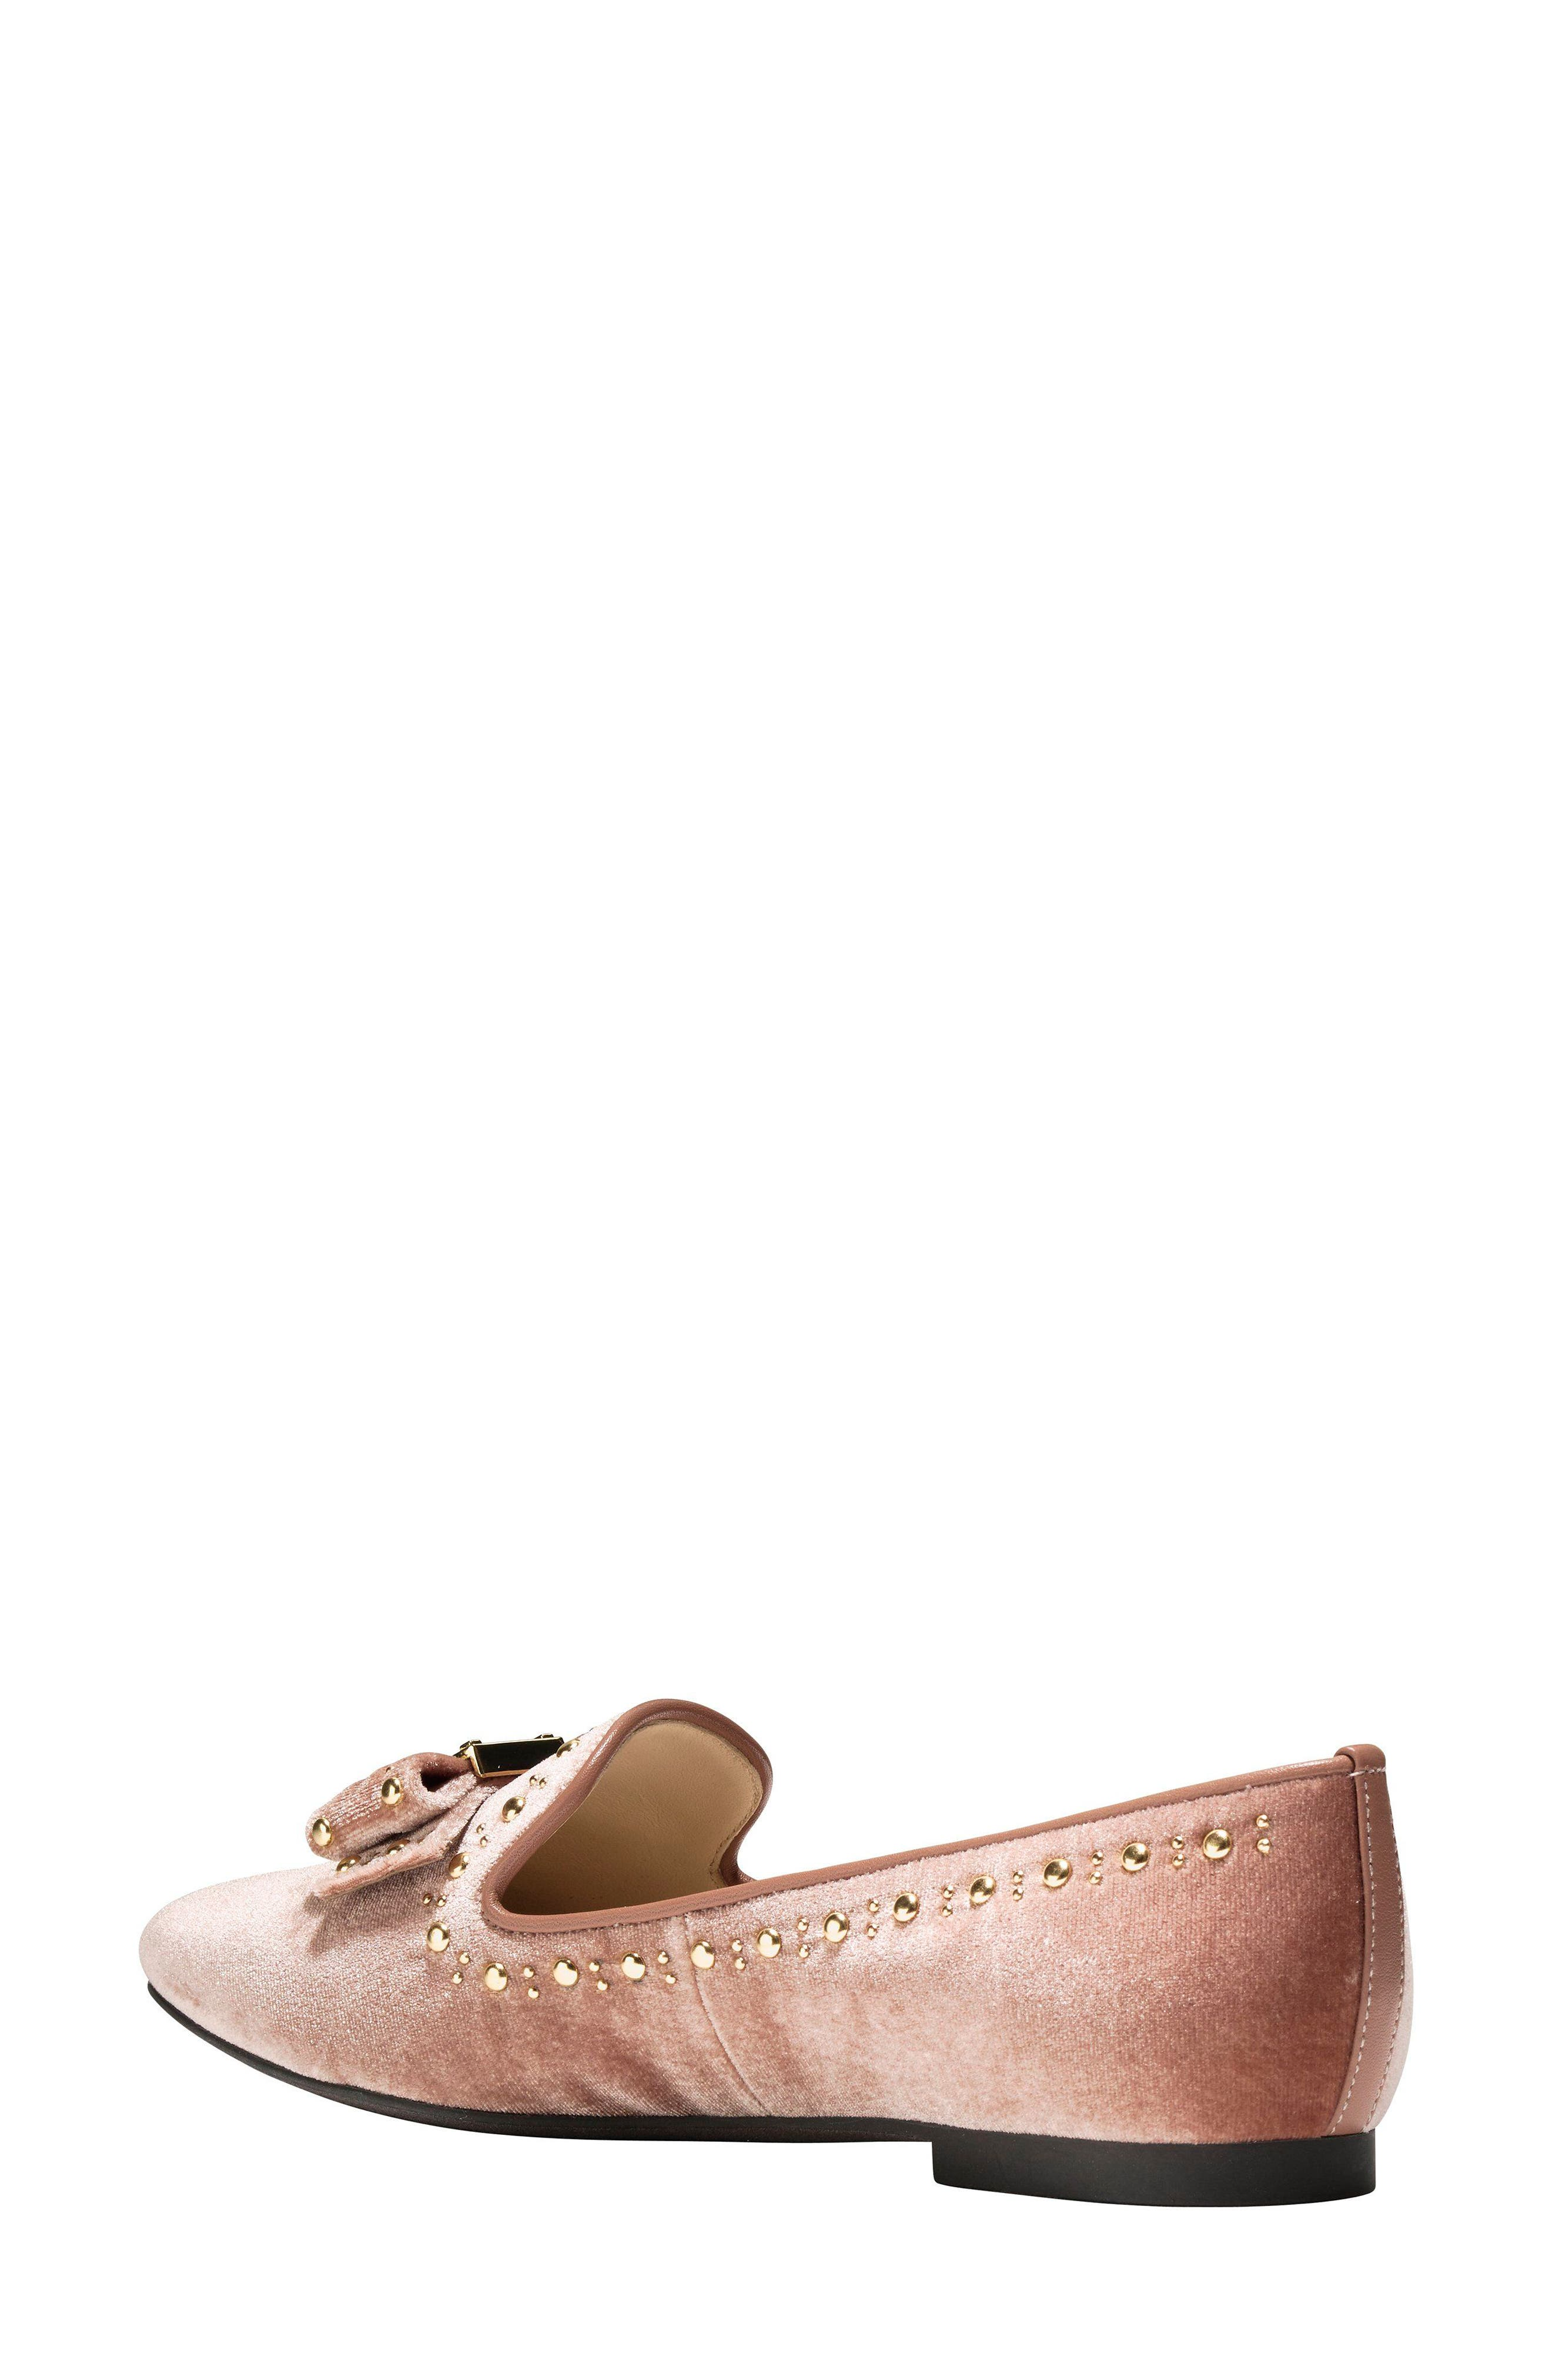 Tali Bow Loafer,                             Alternate thumbnail 5, color,